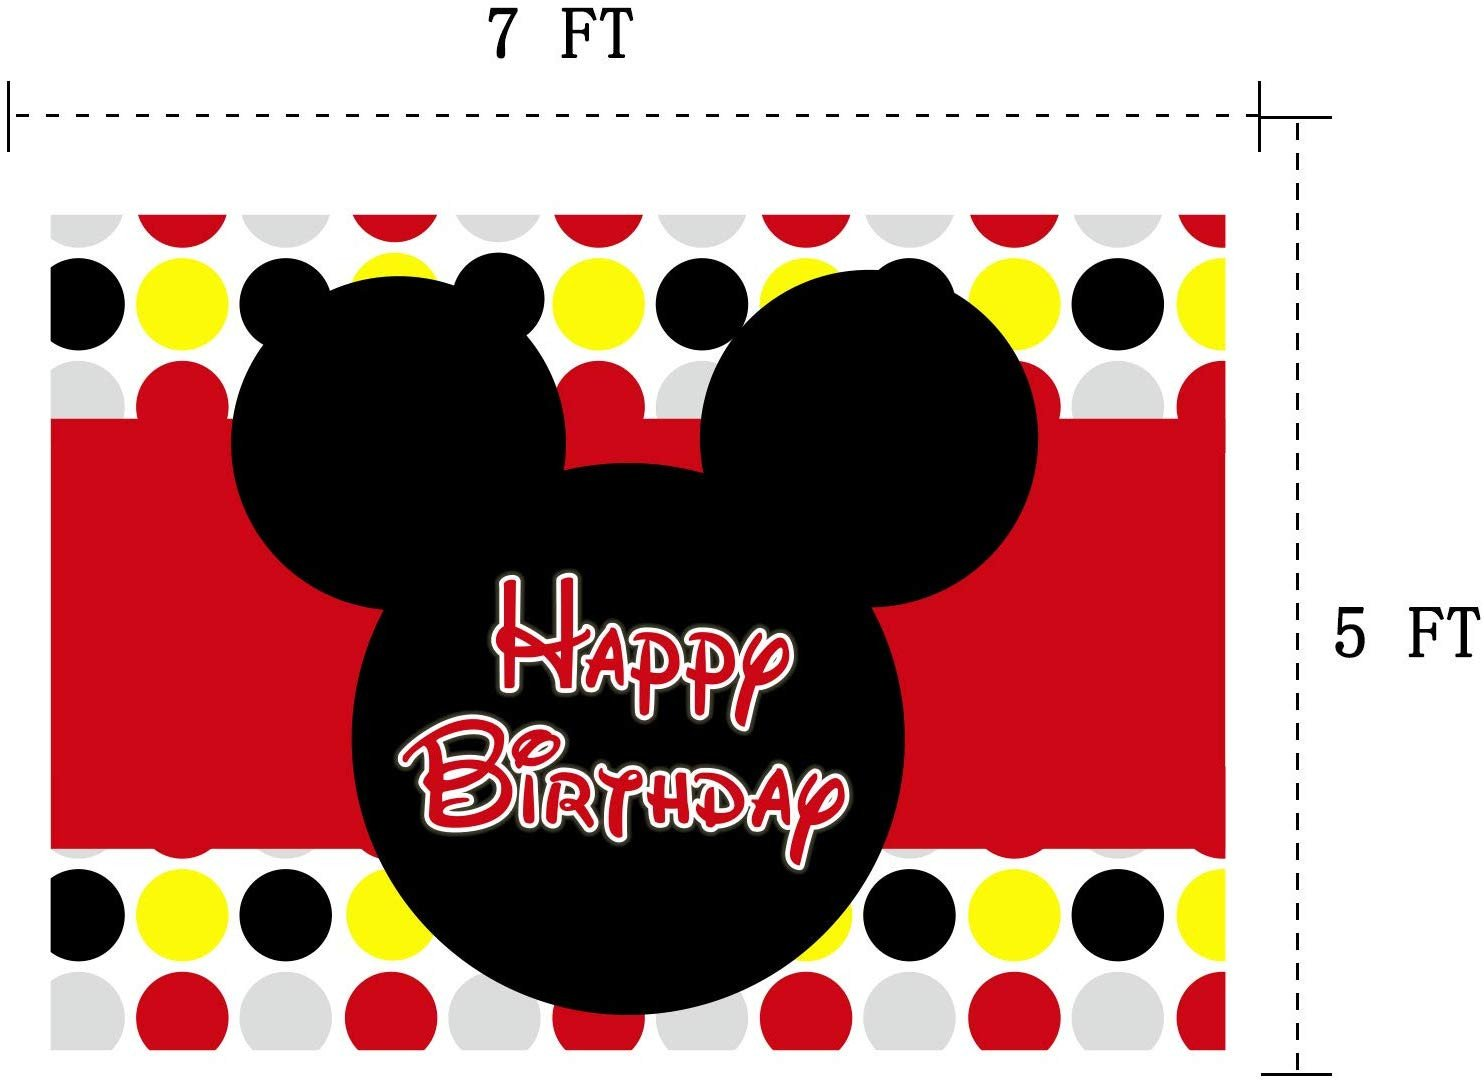 Mickey Mouse Bedroom Decorations Inspirational Zlhcgd 7x5ft Mickey Mouse Graphy Vinyl Background for Kids Birthday Party Backdrops Decoration